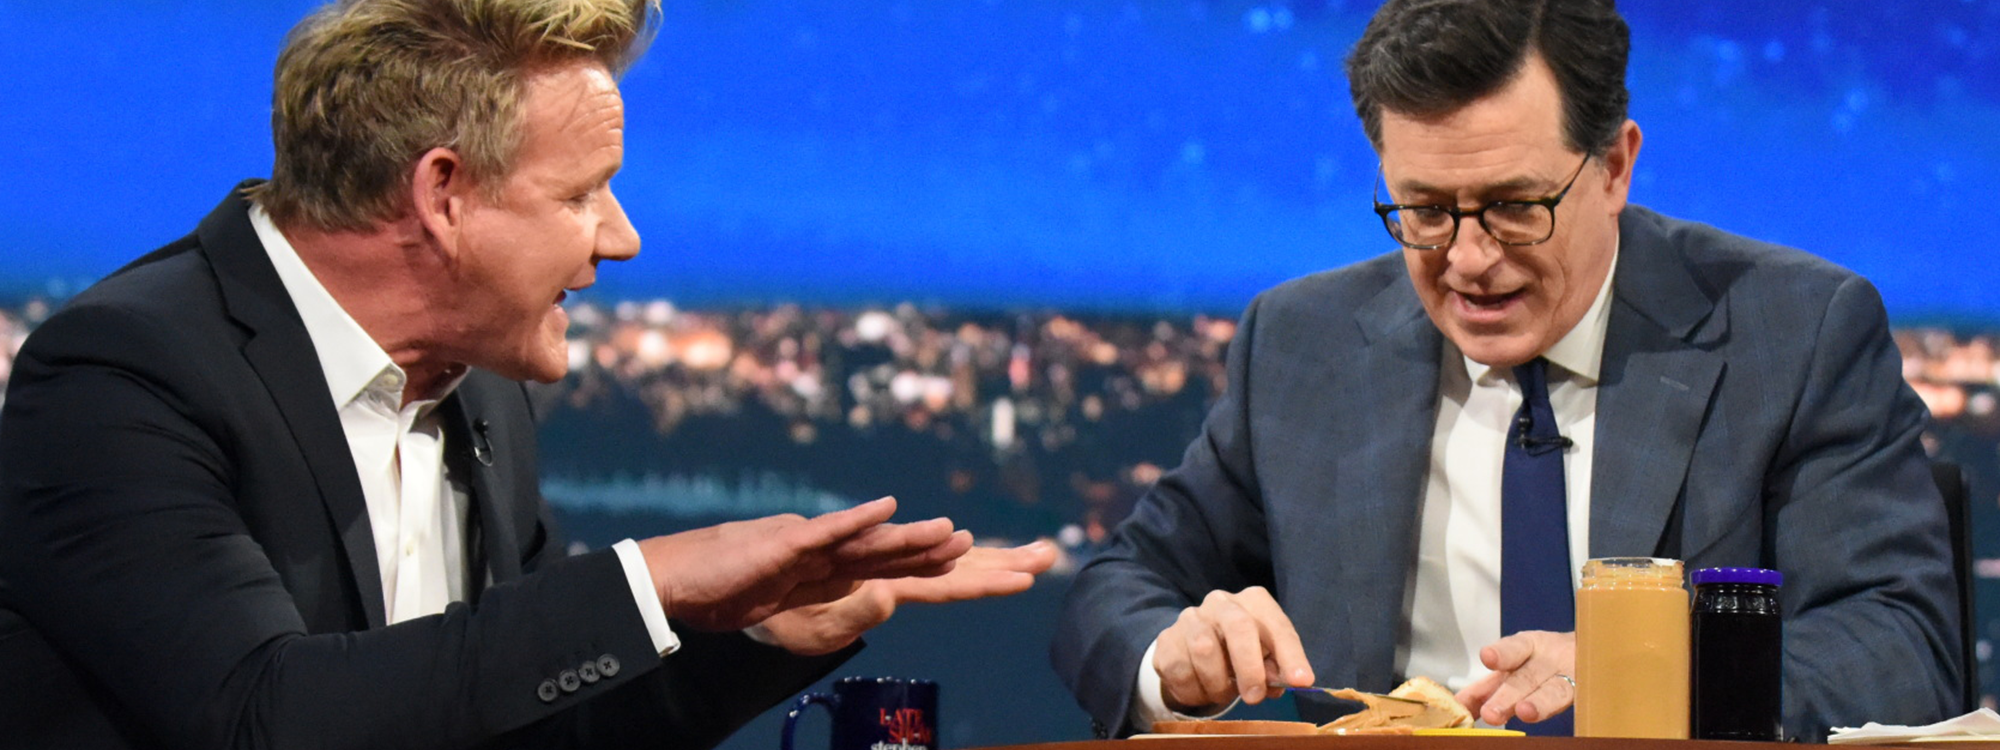 Colbert Prepares PBJ Sandwich for Gordon Ramsey